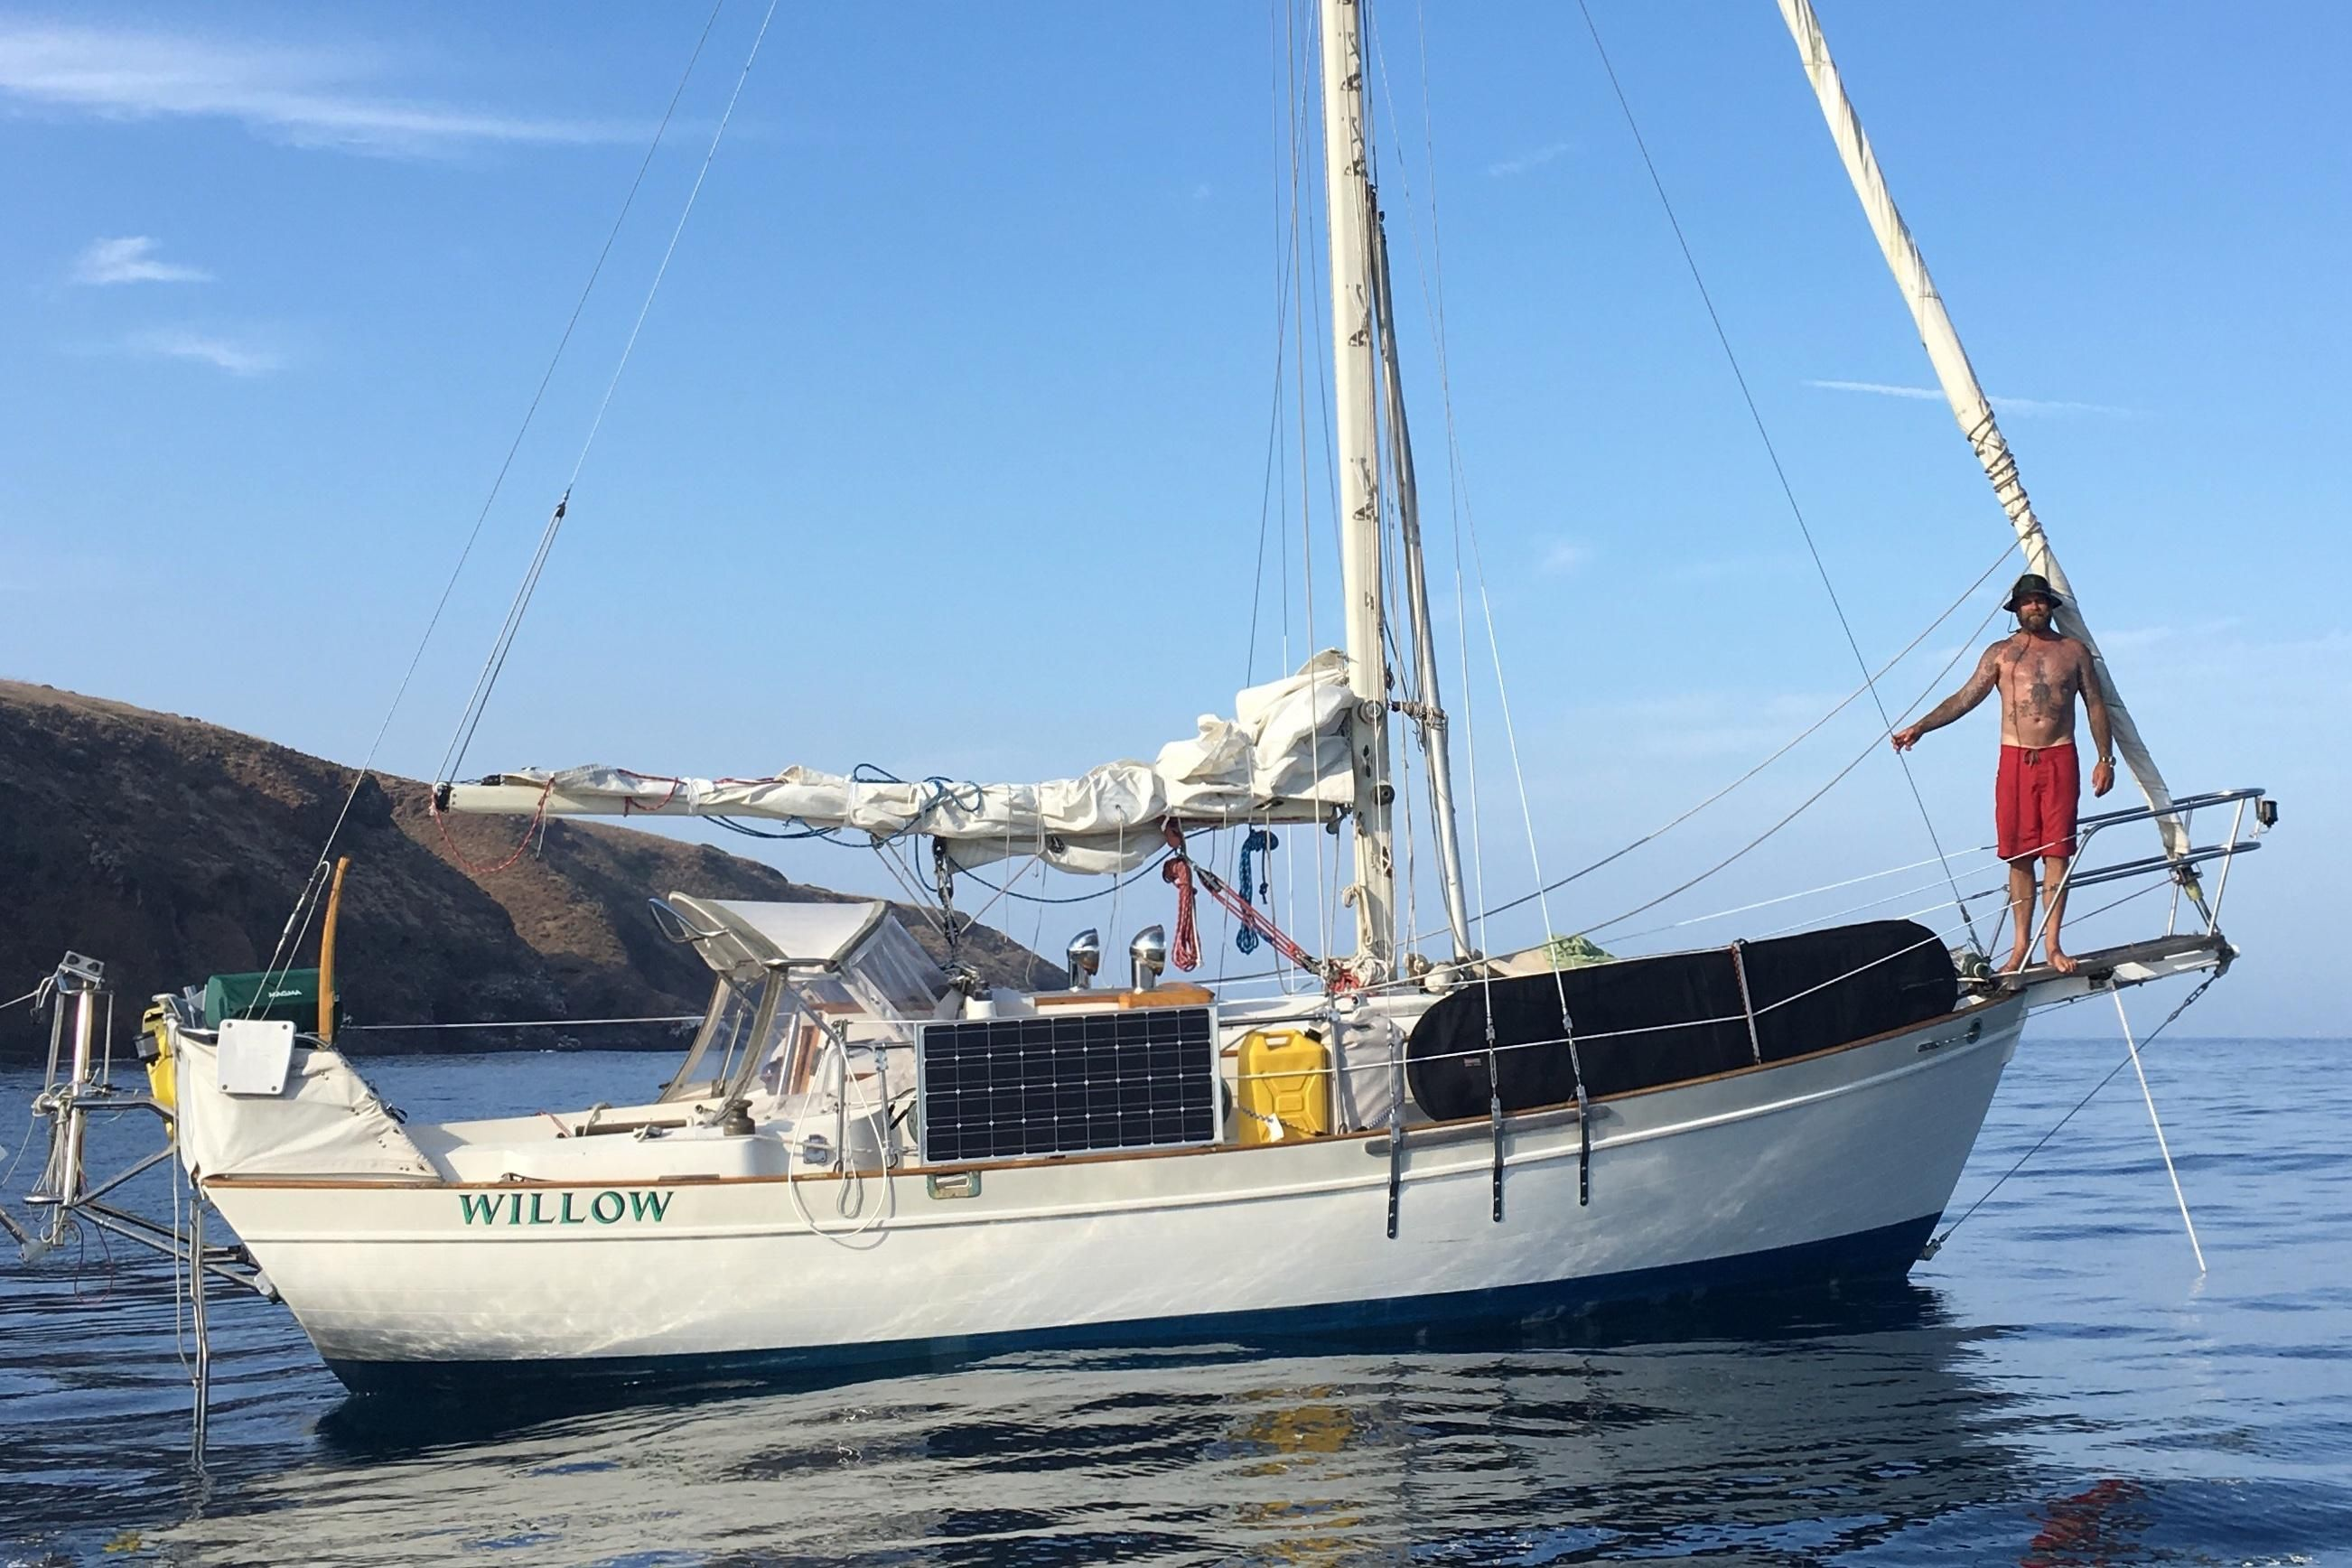 1983 Pacific Seacraft Orion 27 Sail Boat For Sale Www